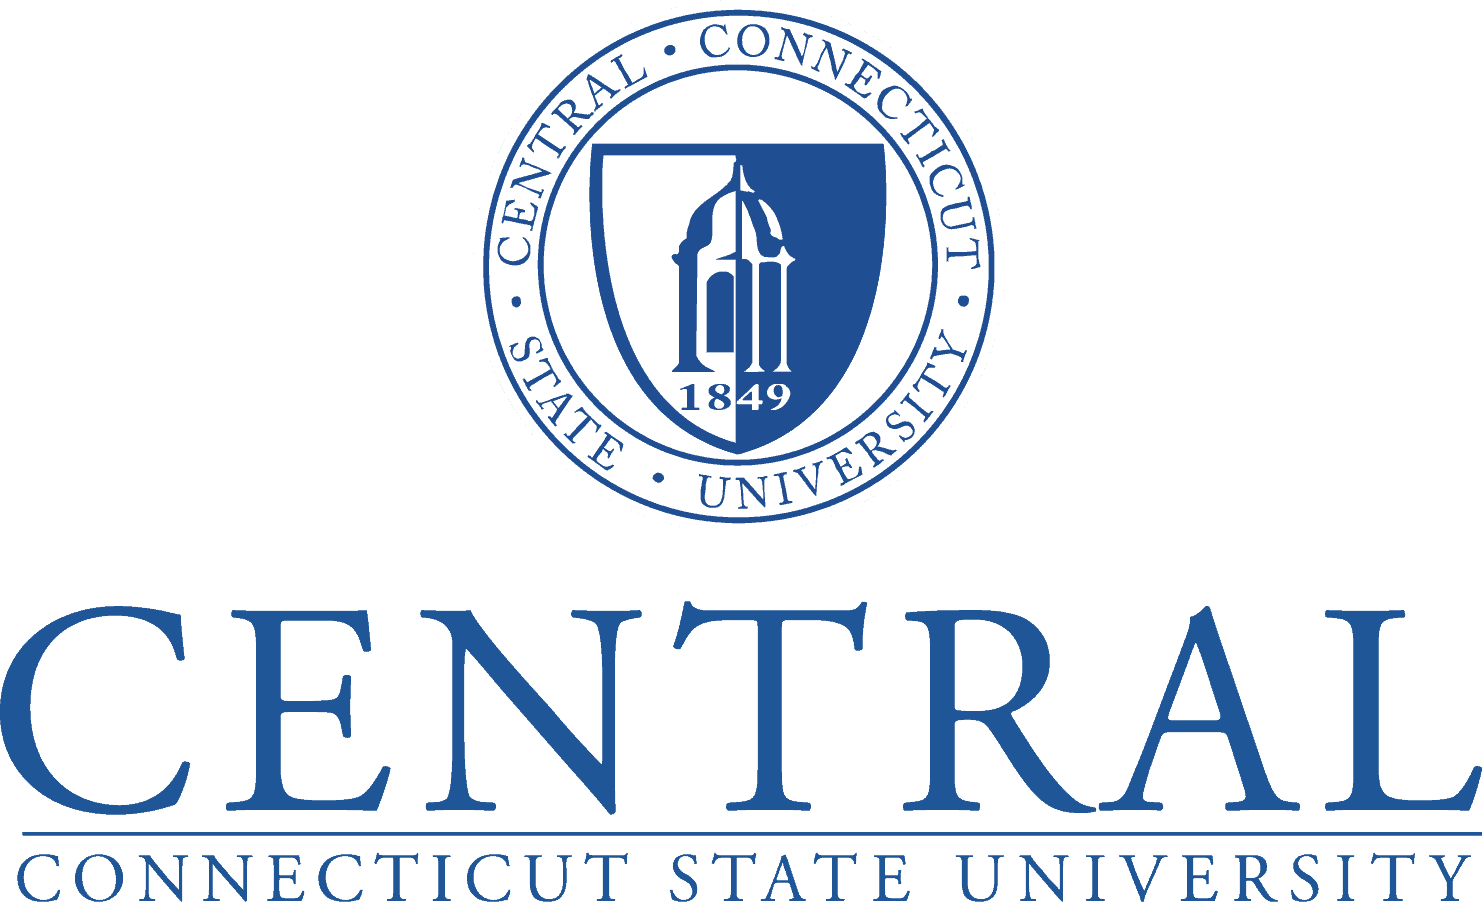 Central Connecticut State University Logo (CCSU) png